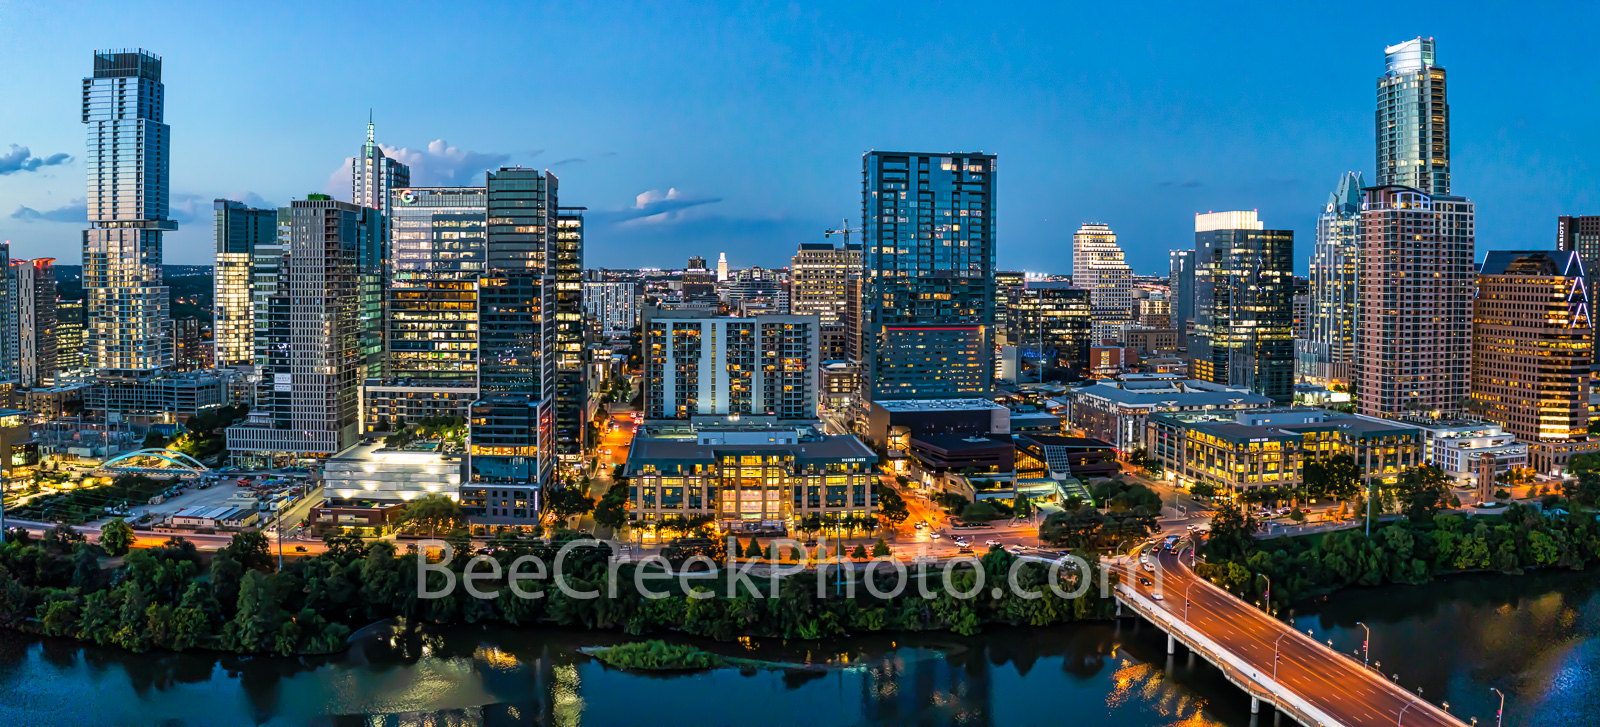 Aerial, Austin Skyline, dusk, twilight, Austin, skyline, austin skyline pictures, aerial, blue hour, lady bird lake, hike and bike trail, cityscape, water, pano, panorama, tallest building, Independen, photo